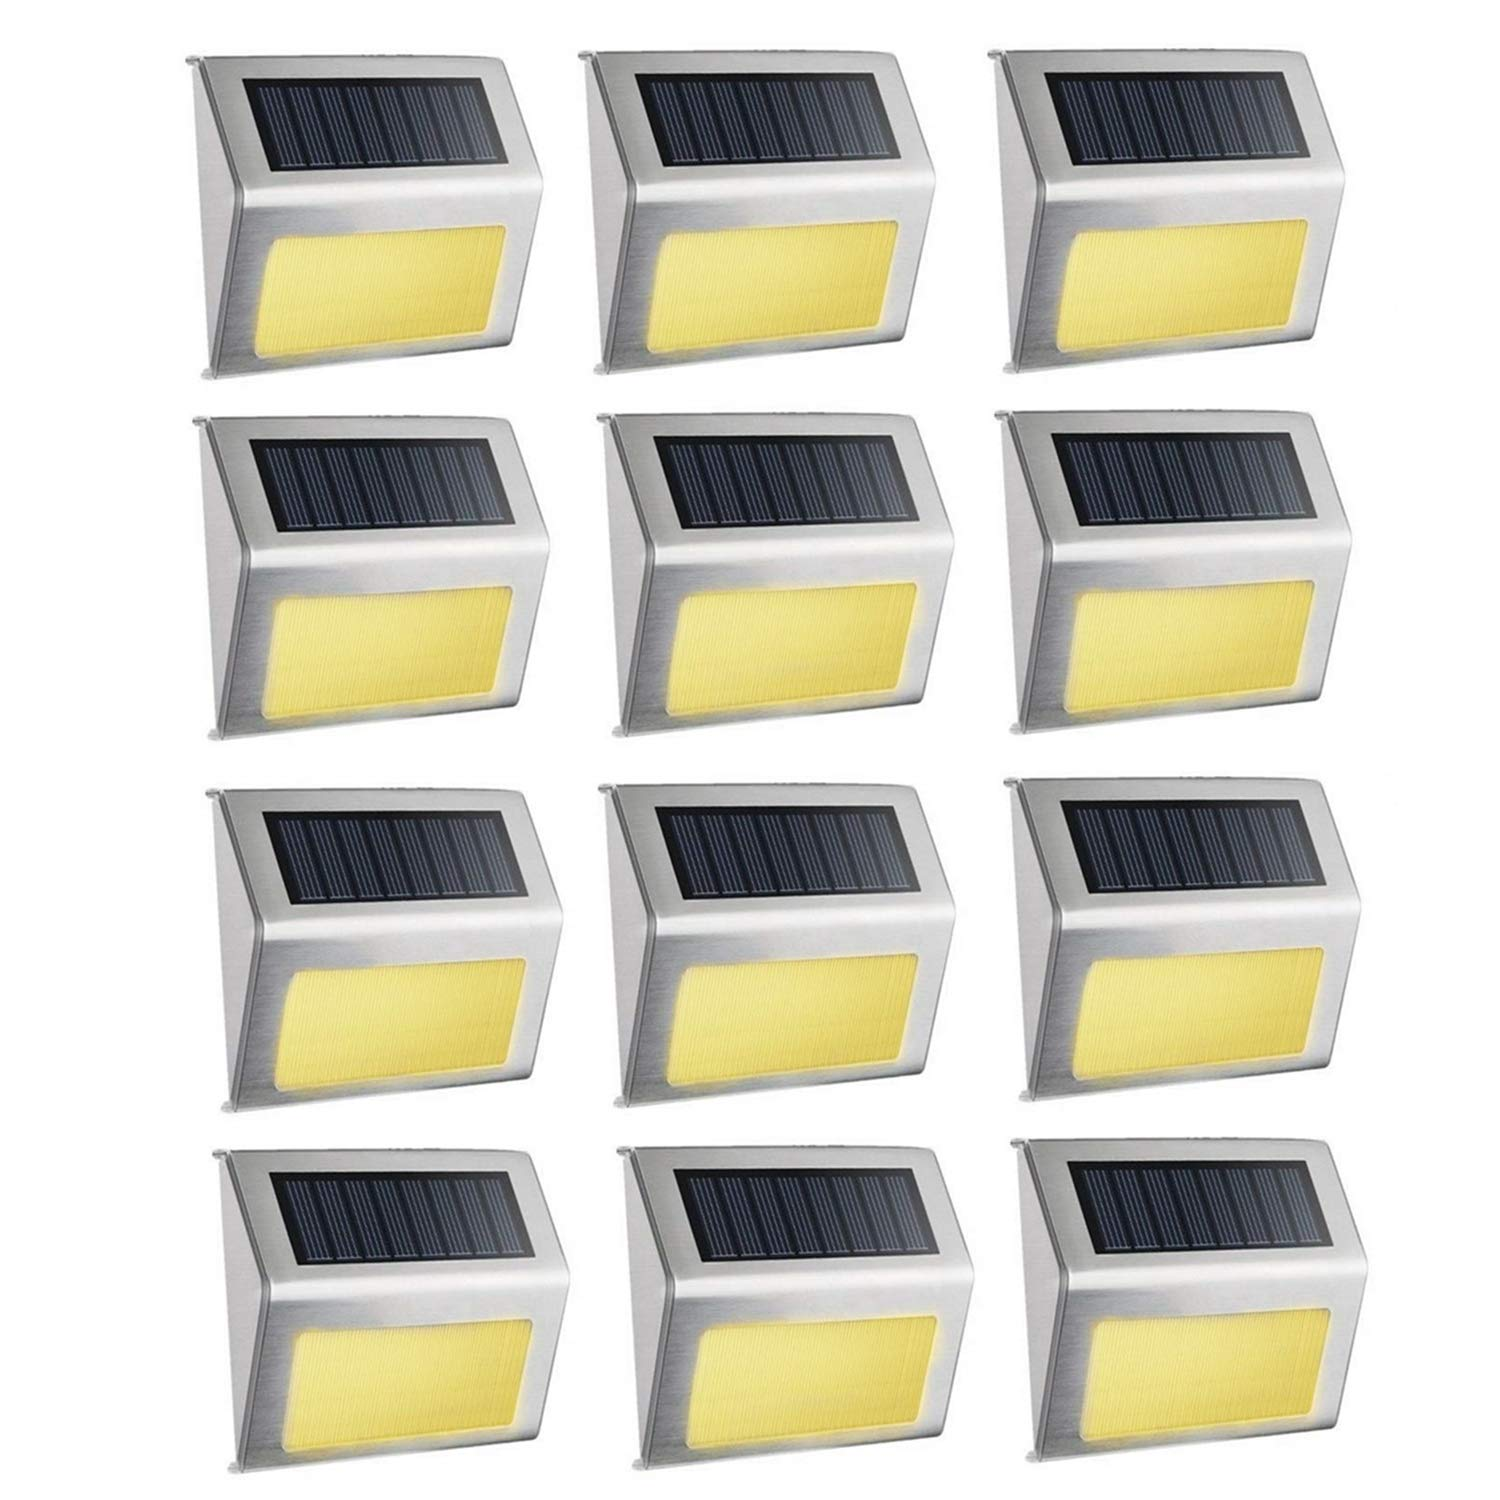 Solar Step Lights, Ecoyes Bright LED Walkway Light Stainless Steel Waterproof Outdoor Security Lamps for Patio Stairs Garden Pathway - Warm Light (12 Pack)